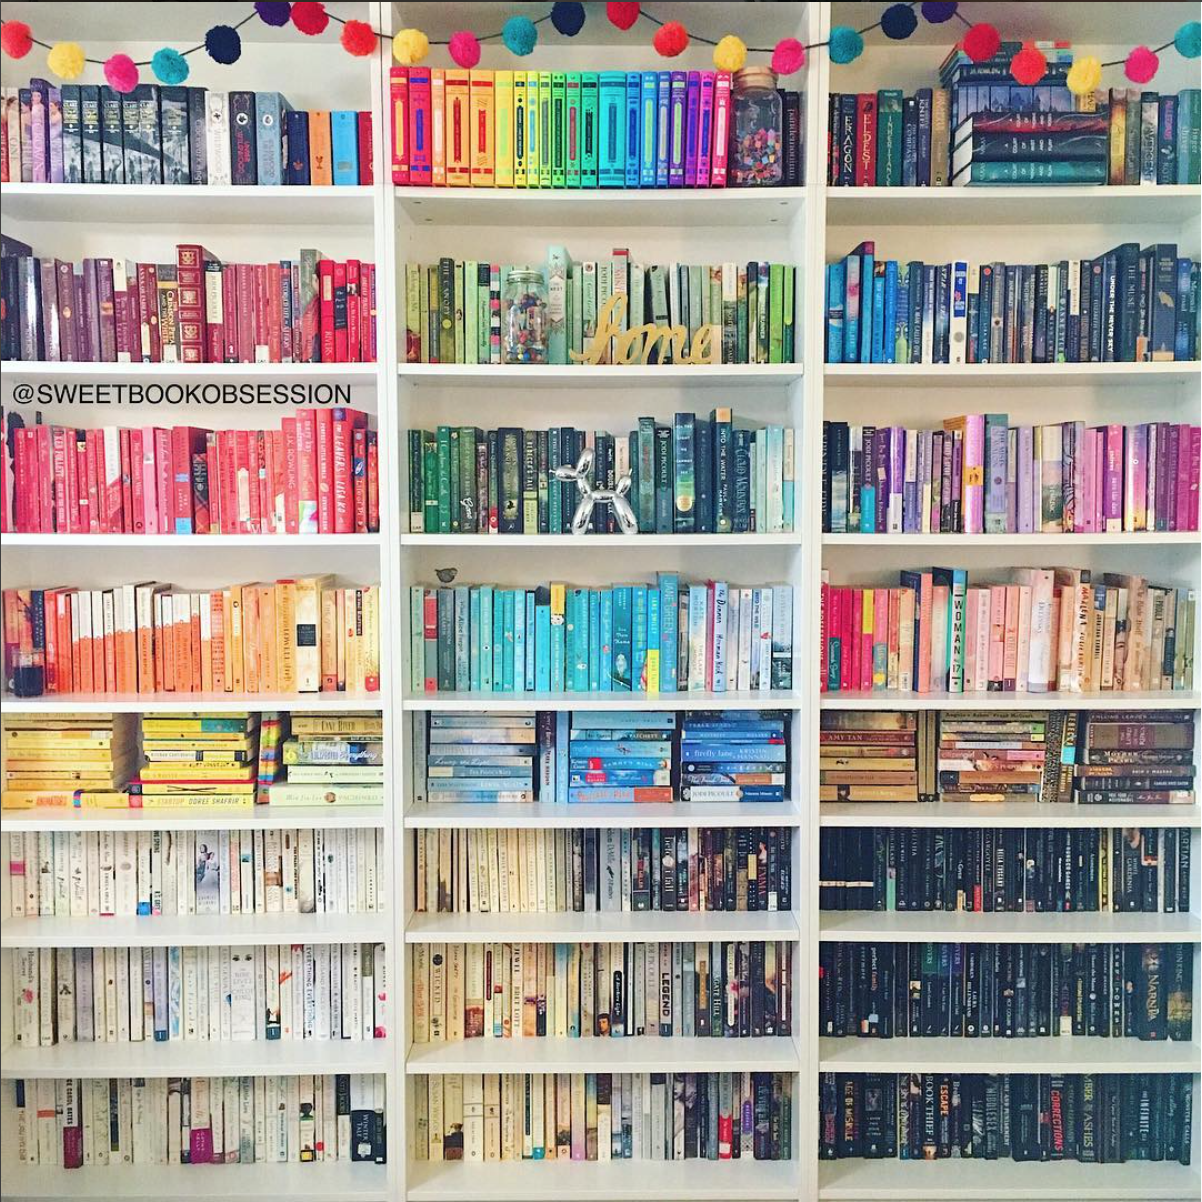 7 Everythings Better When Its Color Coded These Rainbow Shelves Are A Huge Trend On Instagram Luckily Theyre Super Easy To Recreate